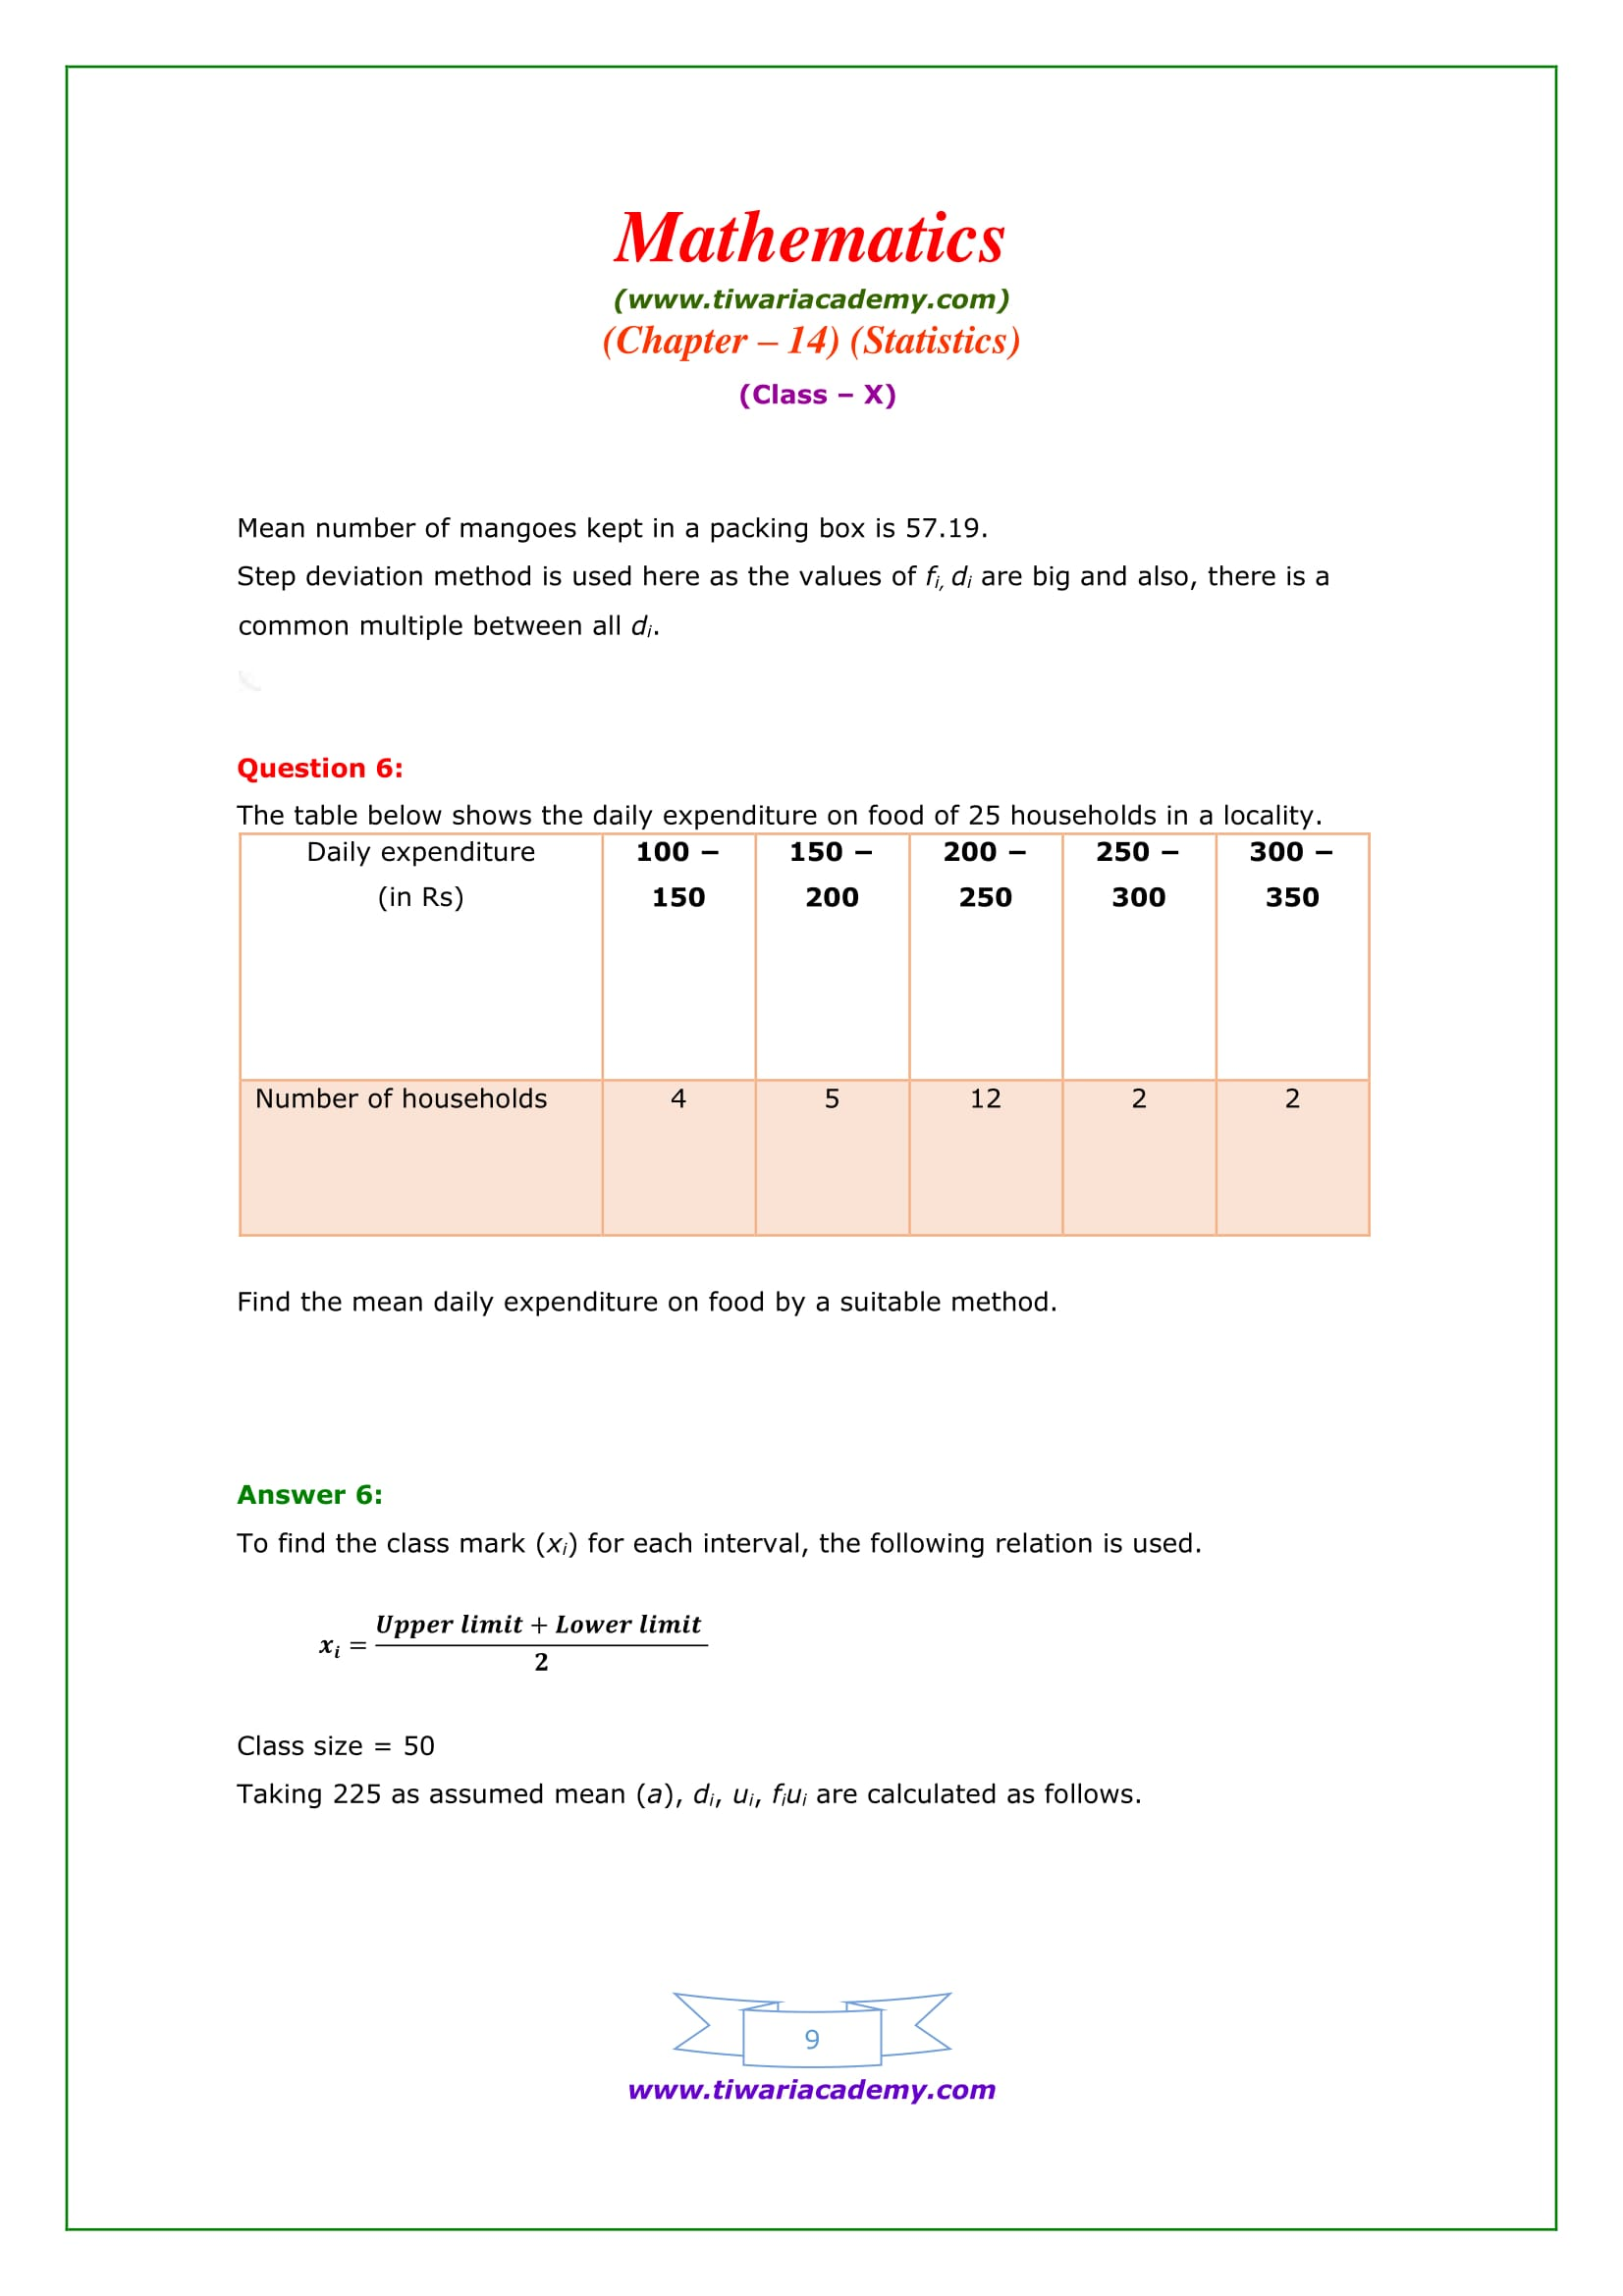 NCERT Solutions for Class 10 Maths Chapter 14 Exercise 14.1 Question 6